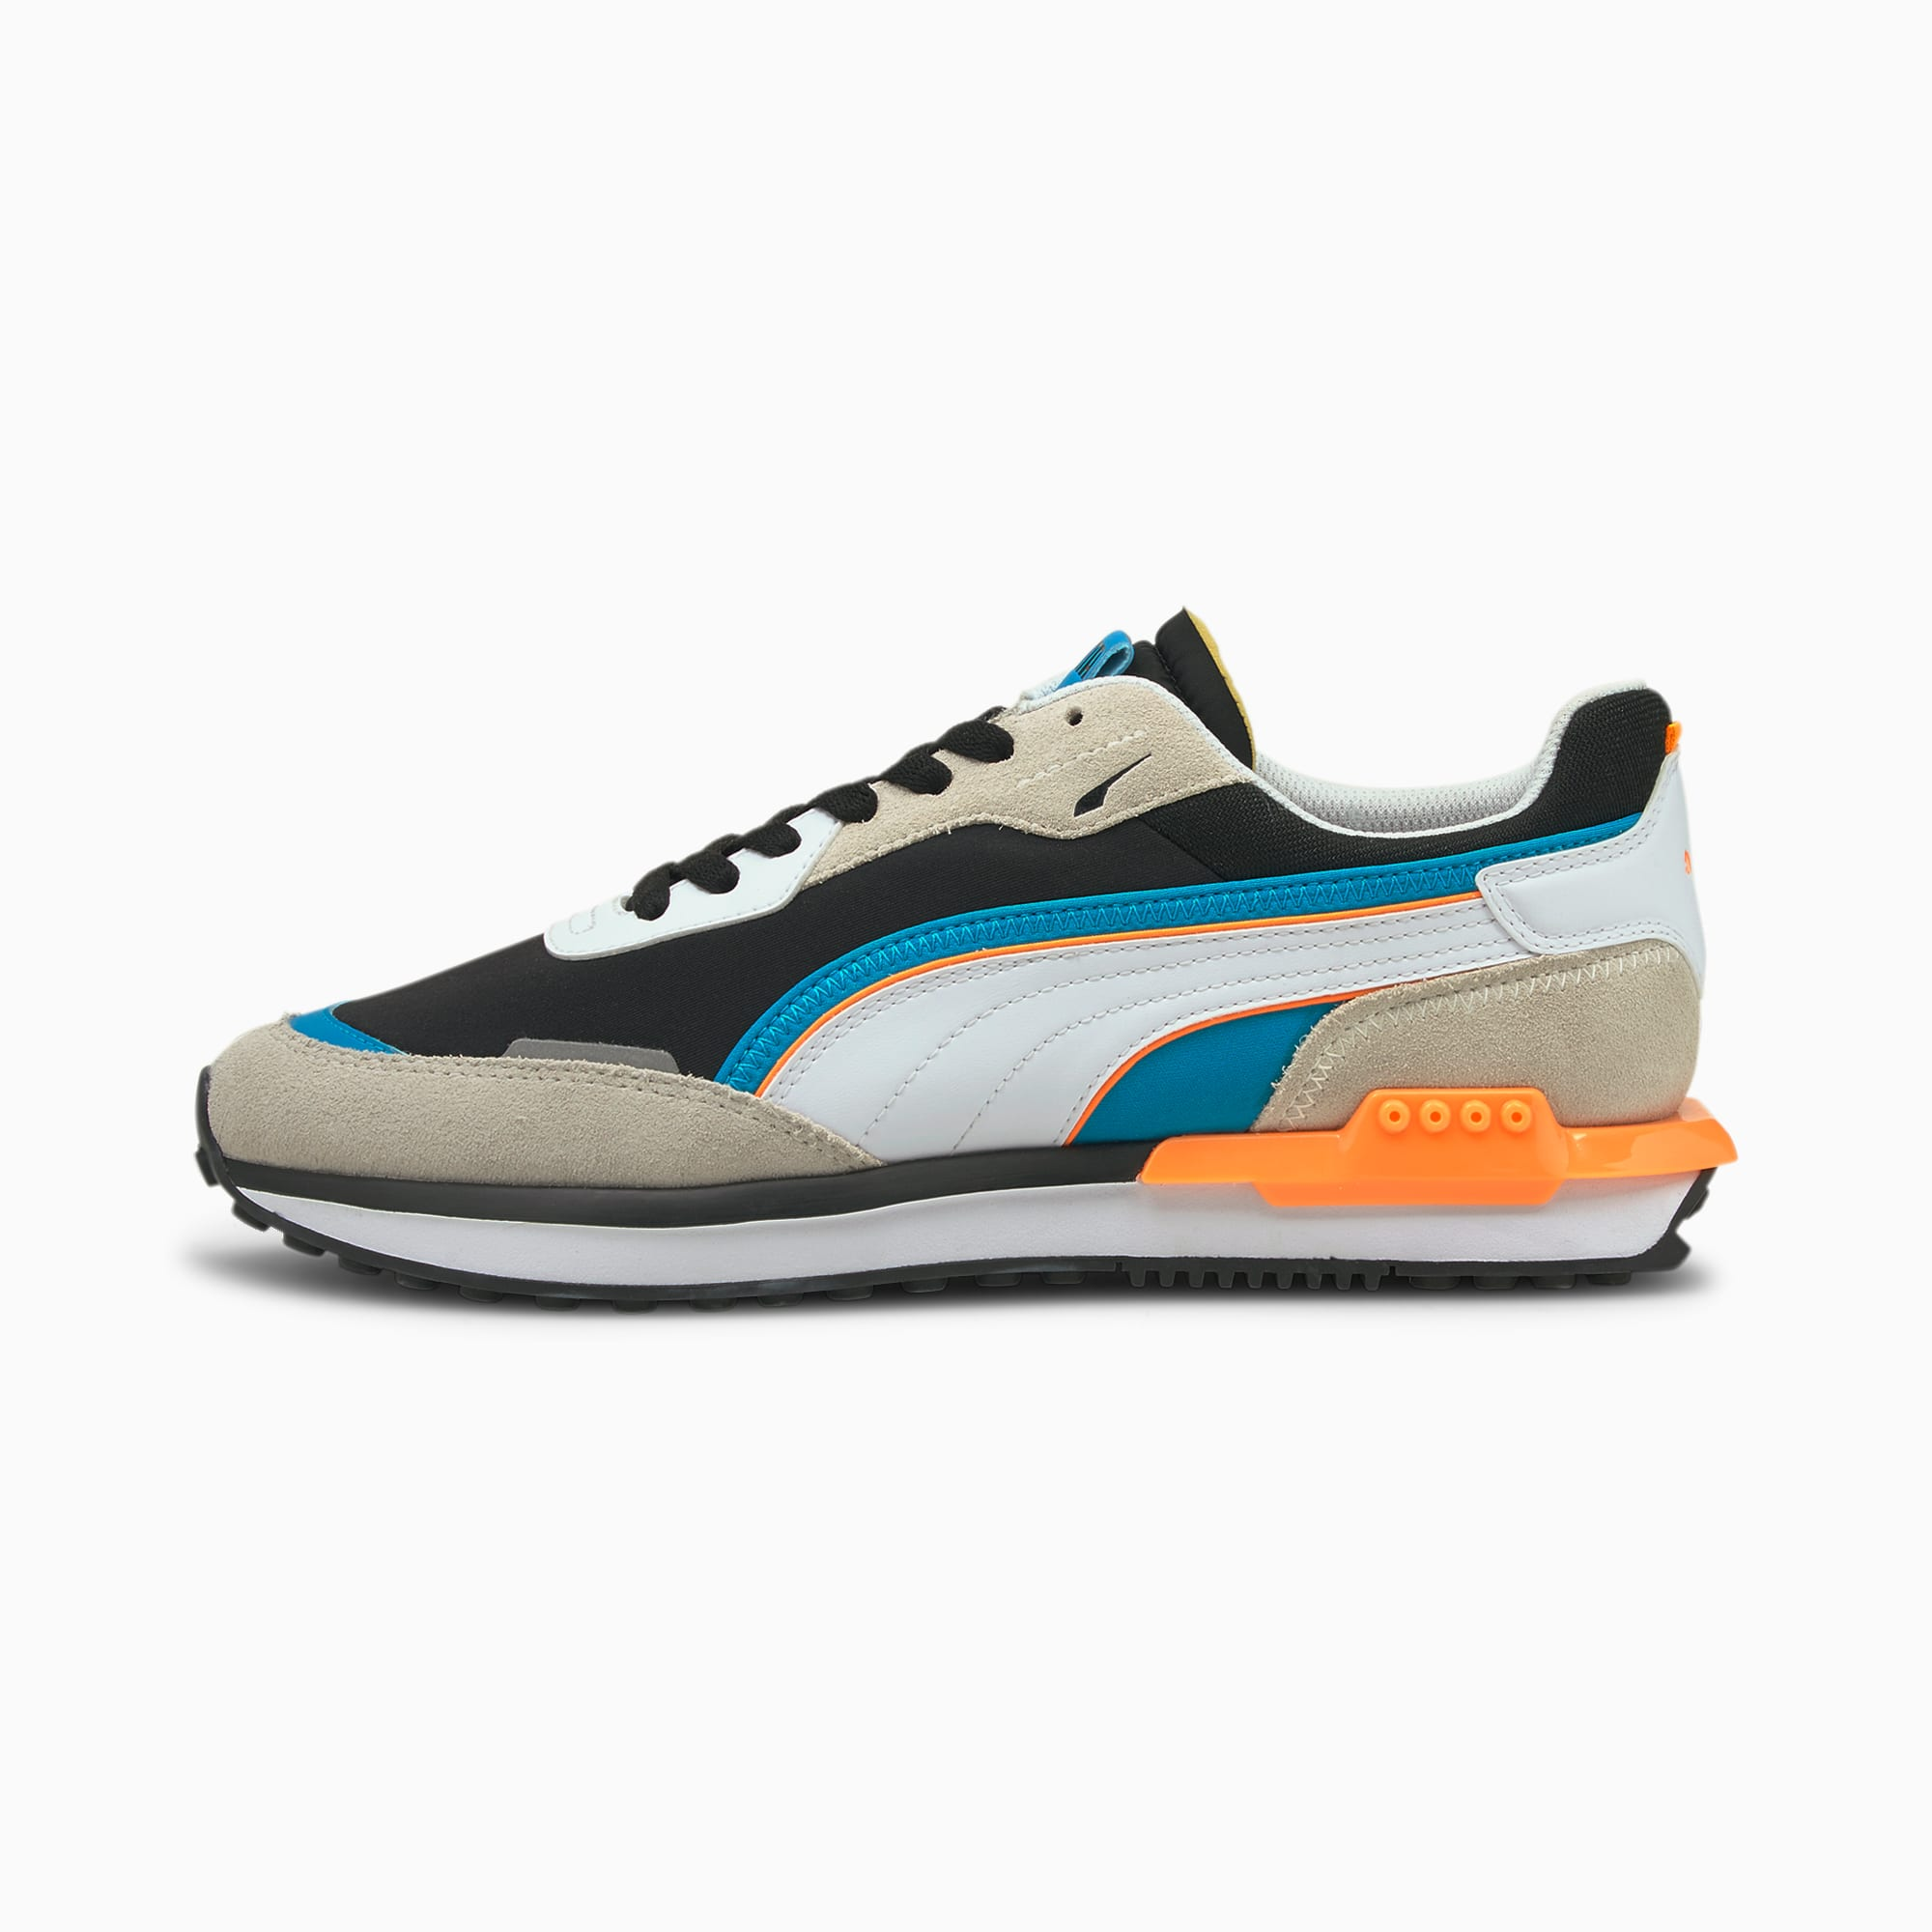 City Rider Sneakers